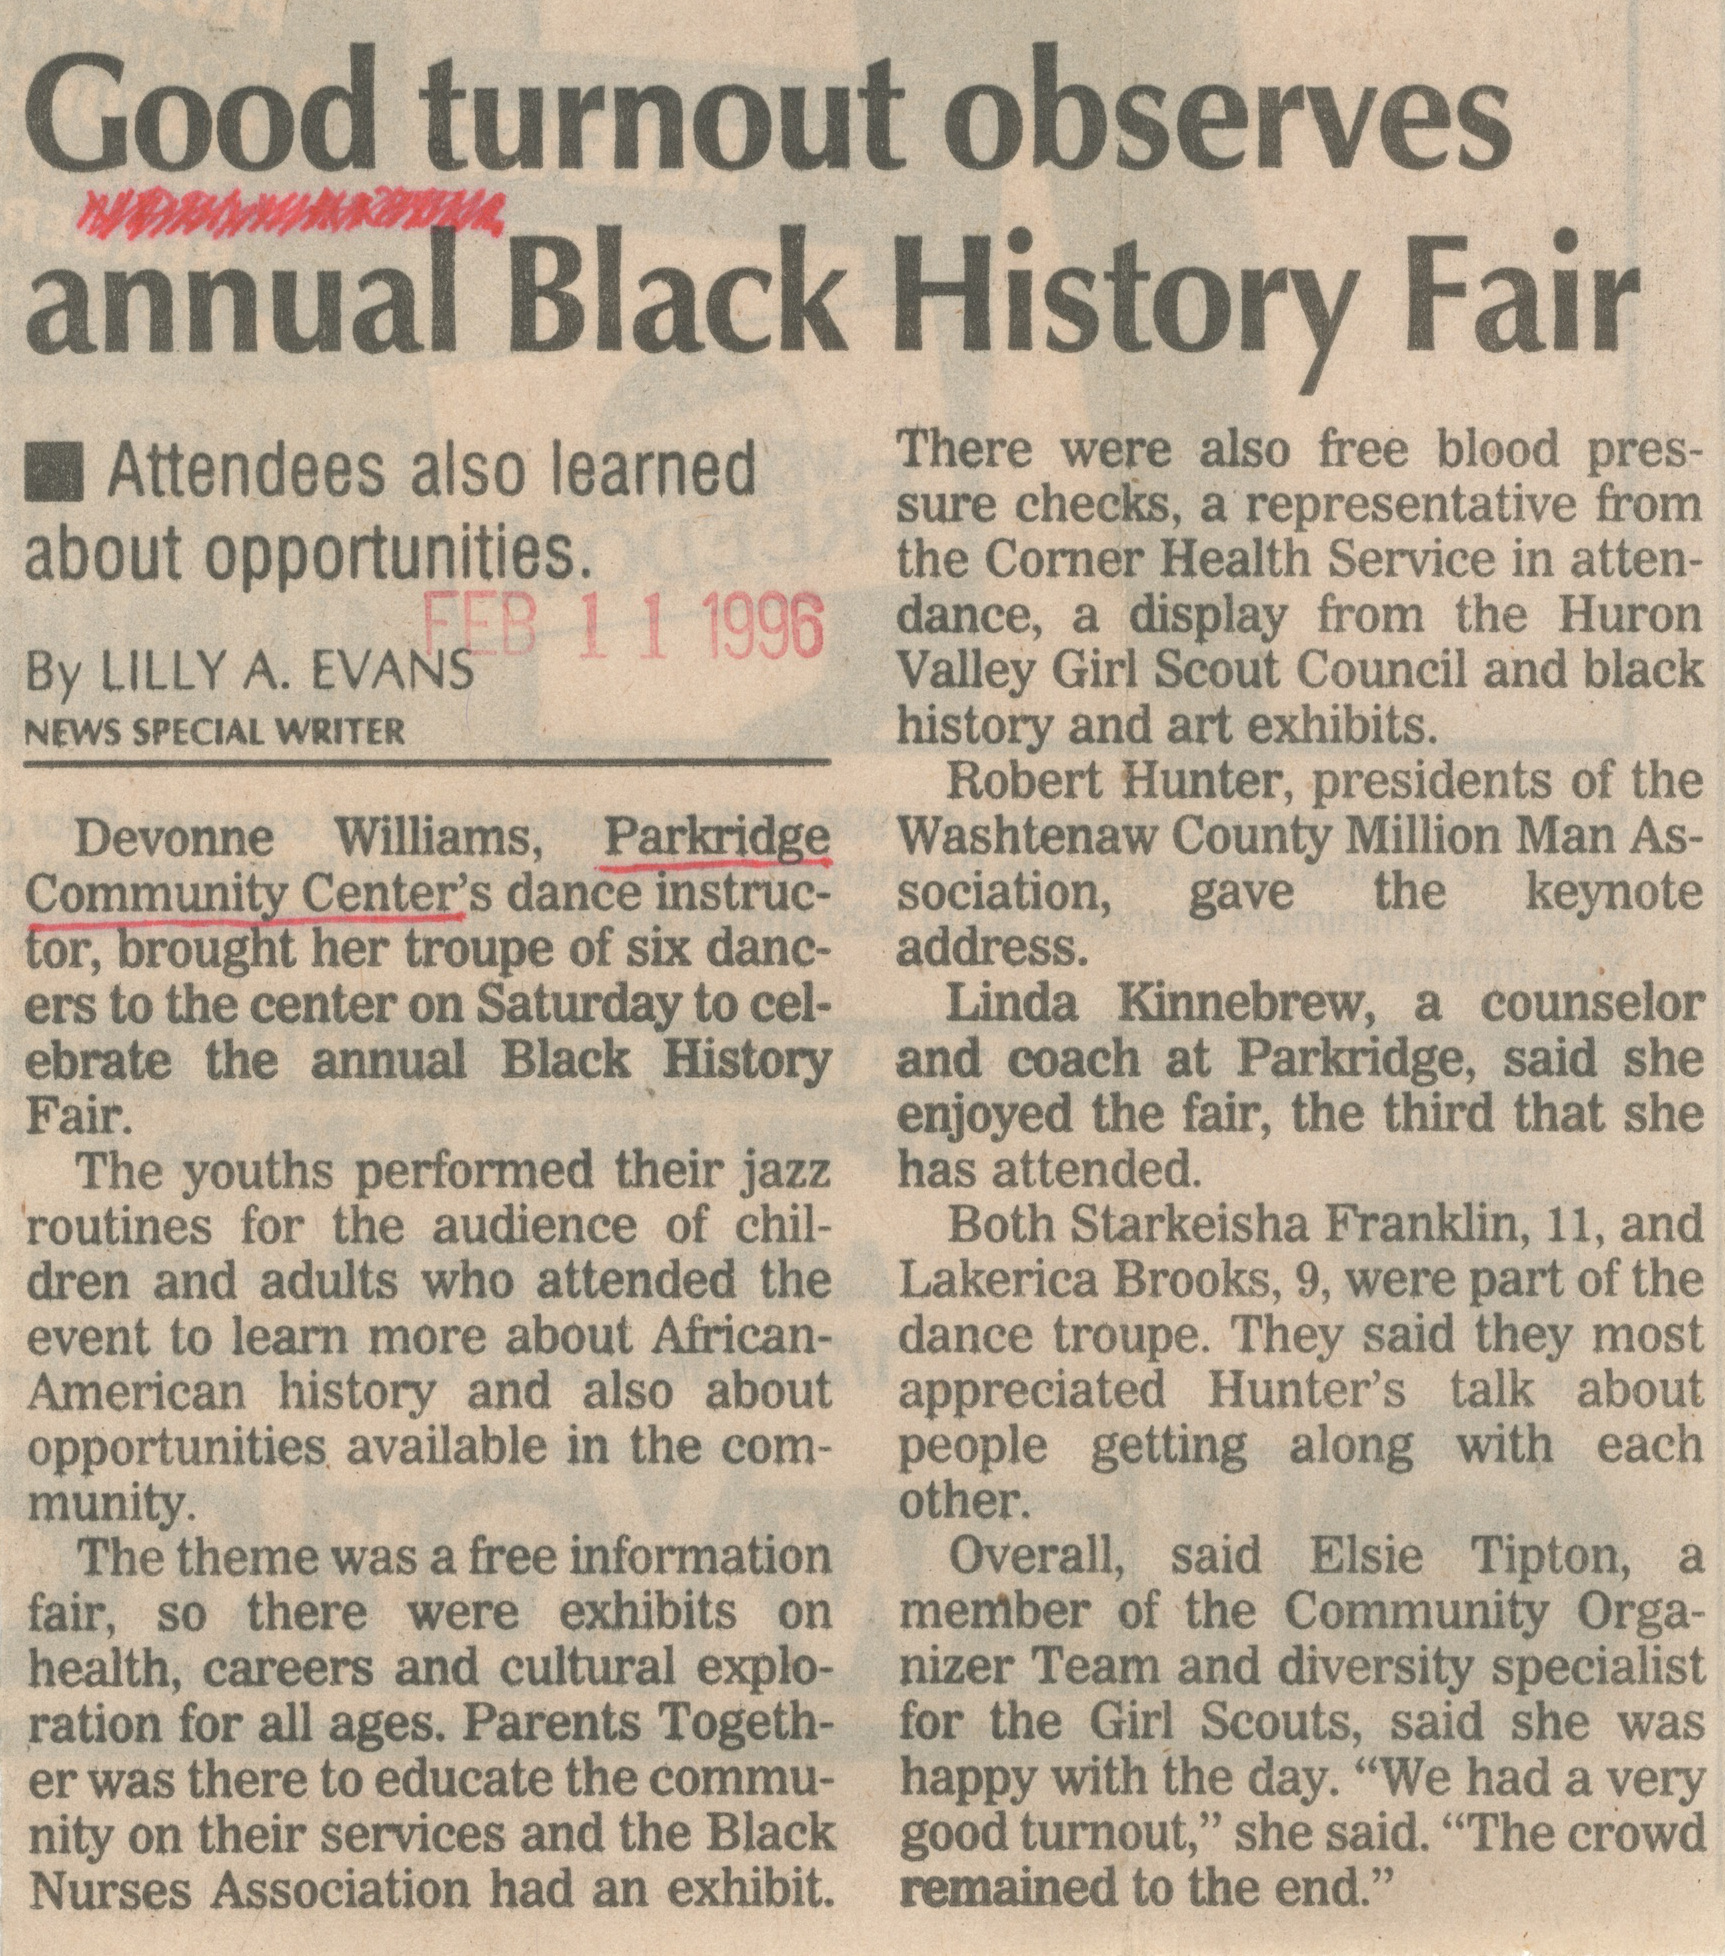 Good Turnout Observes Annual Black History Fair image